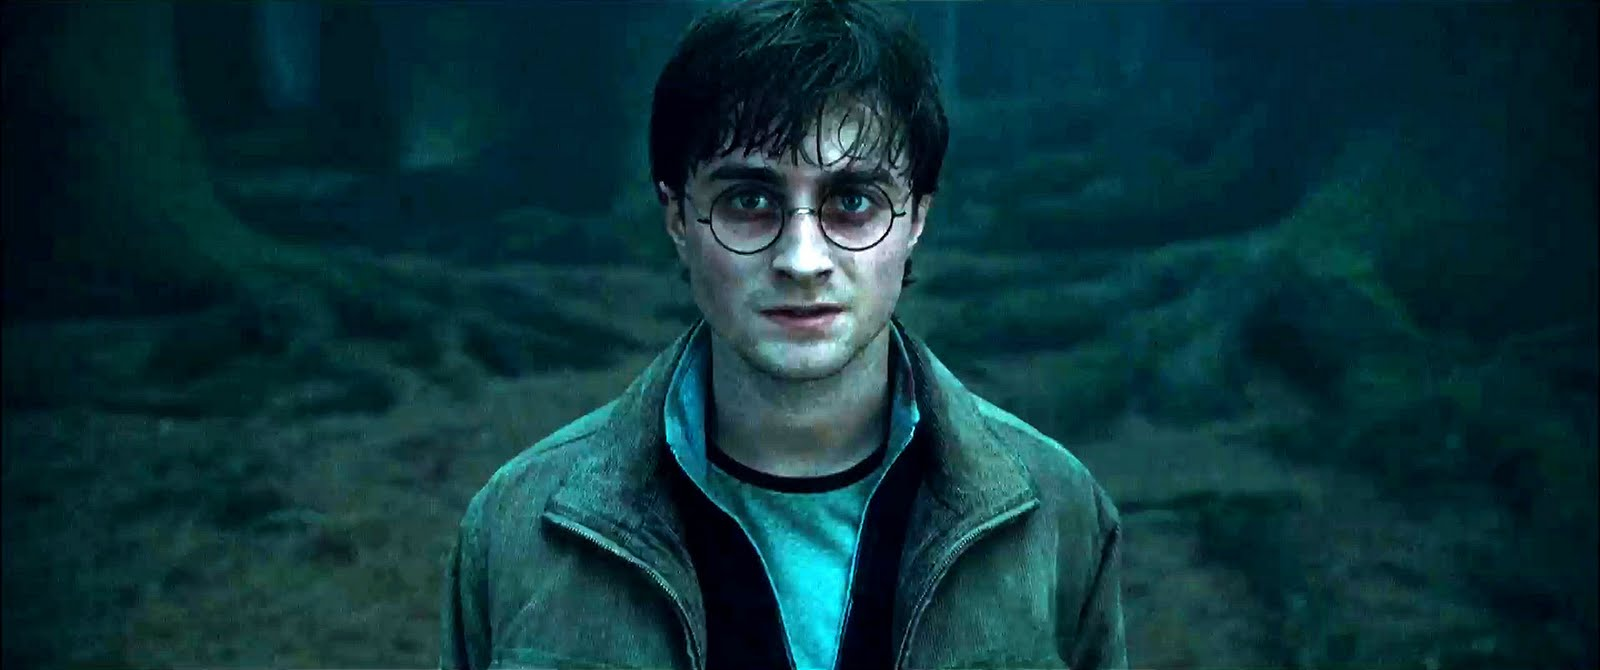 http://2.bp.blogspot.com/-zX2S1ncrn3g/TiDRONfAtEI/AAAAAAAAAlw/ILMzii2g7vk/s1600/Harry+Potter+and+the+Deathly+Hallows.jpg